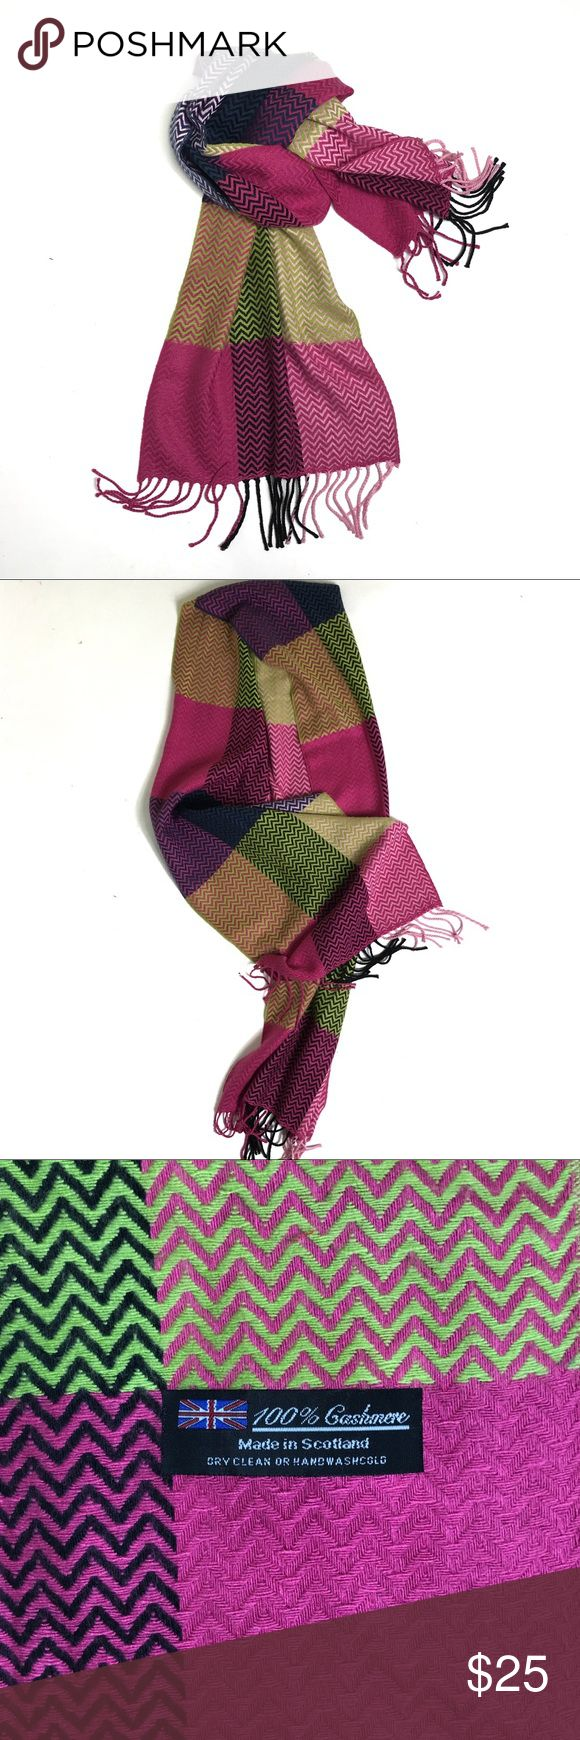 "Nordstrom Scottish Cashmere Plaid Scarf Excellent condition fringed cashmere scarf purchased at Nordstrom. Super soft with bright, vibrant colors. Goes with so many things. 100% cashmere. Made in Scotland. 13""w x 70""l Nordstrom Accessories Scarves & Wraps"